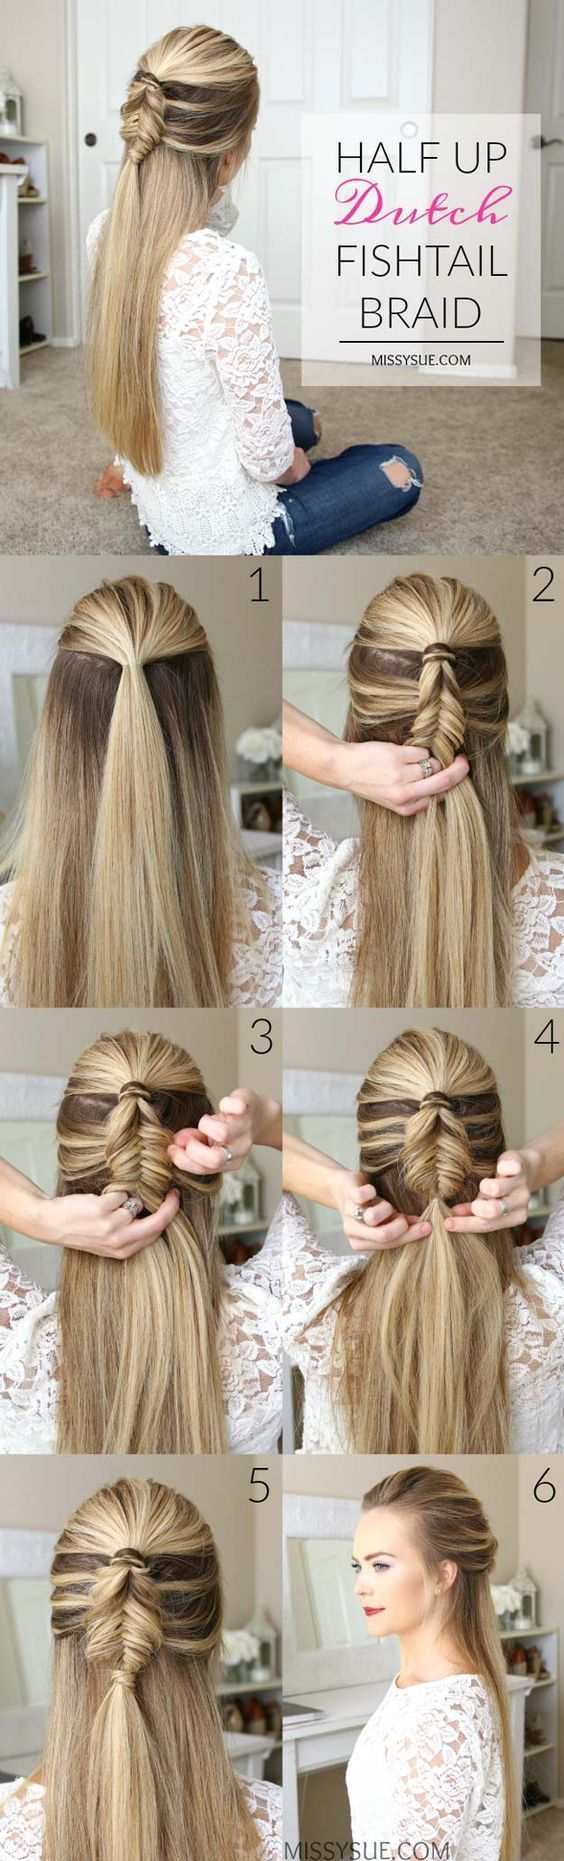 Hairstyles hairstyle hair style design lifestyle fashion